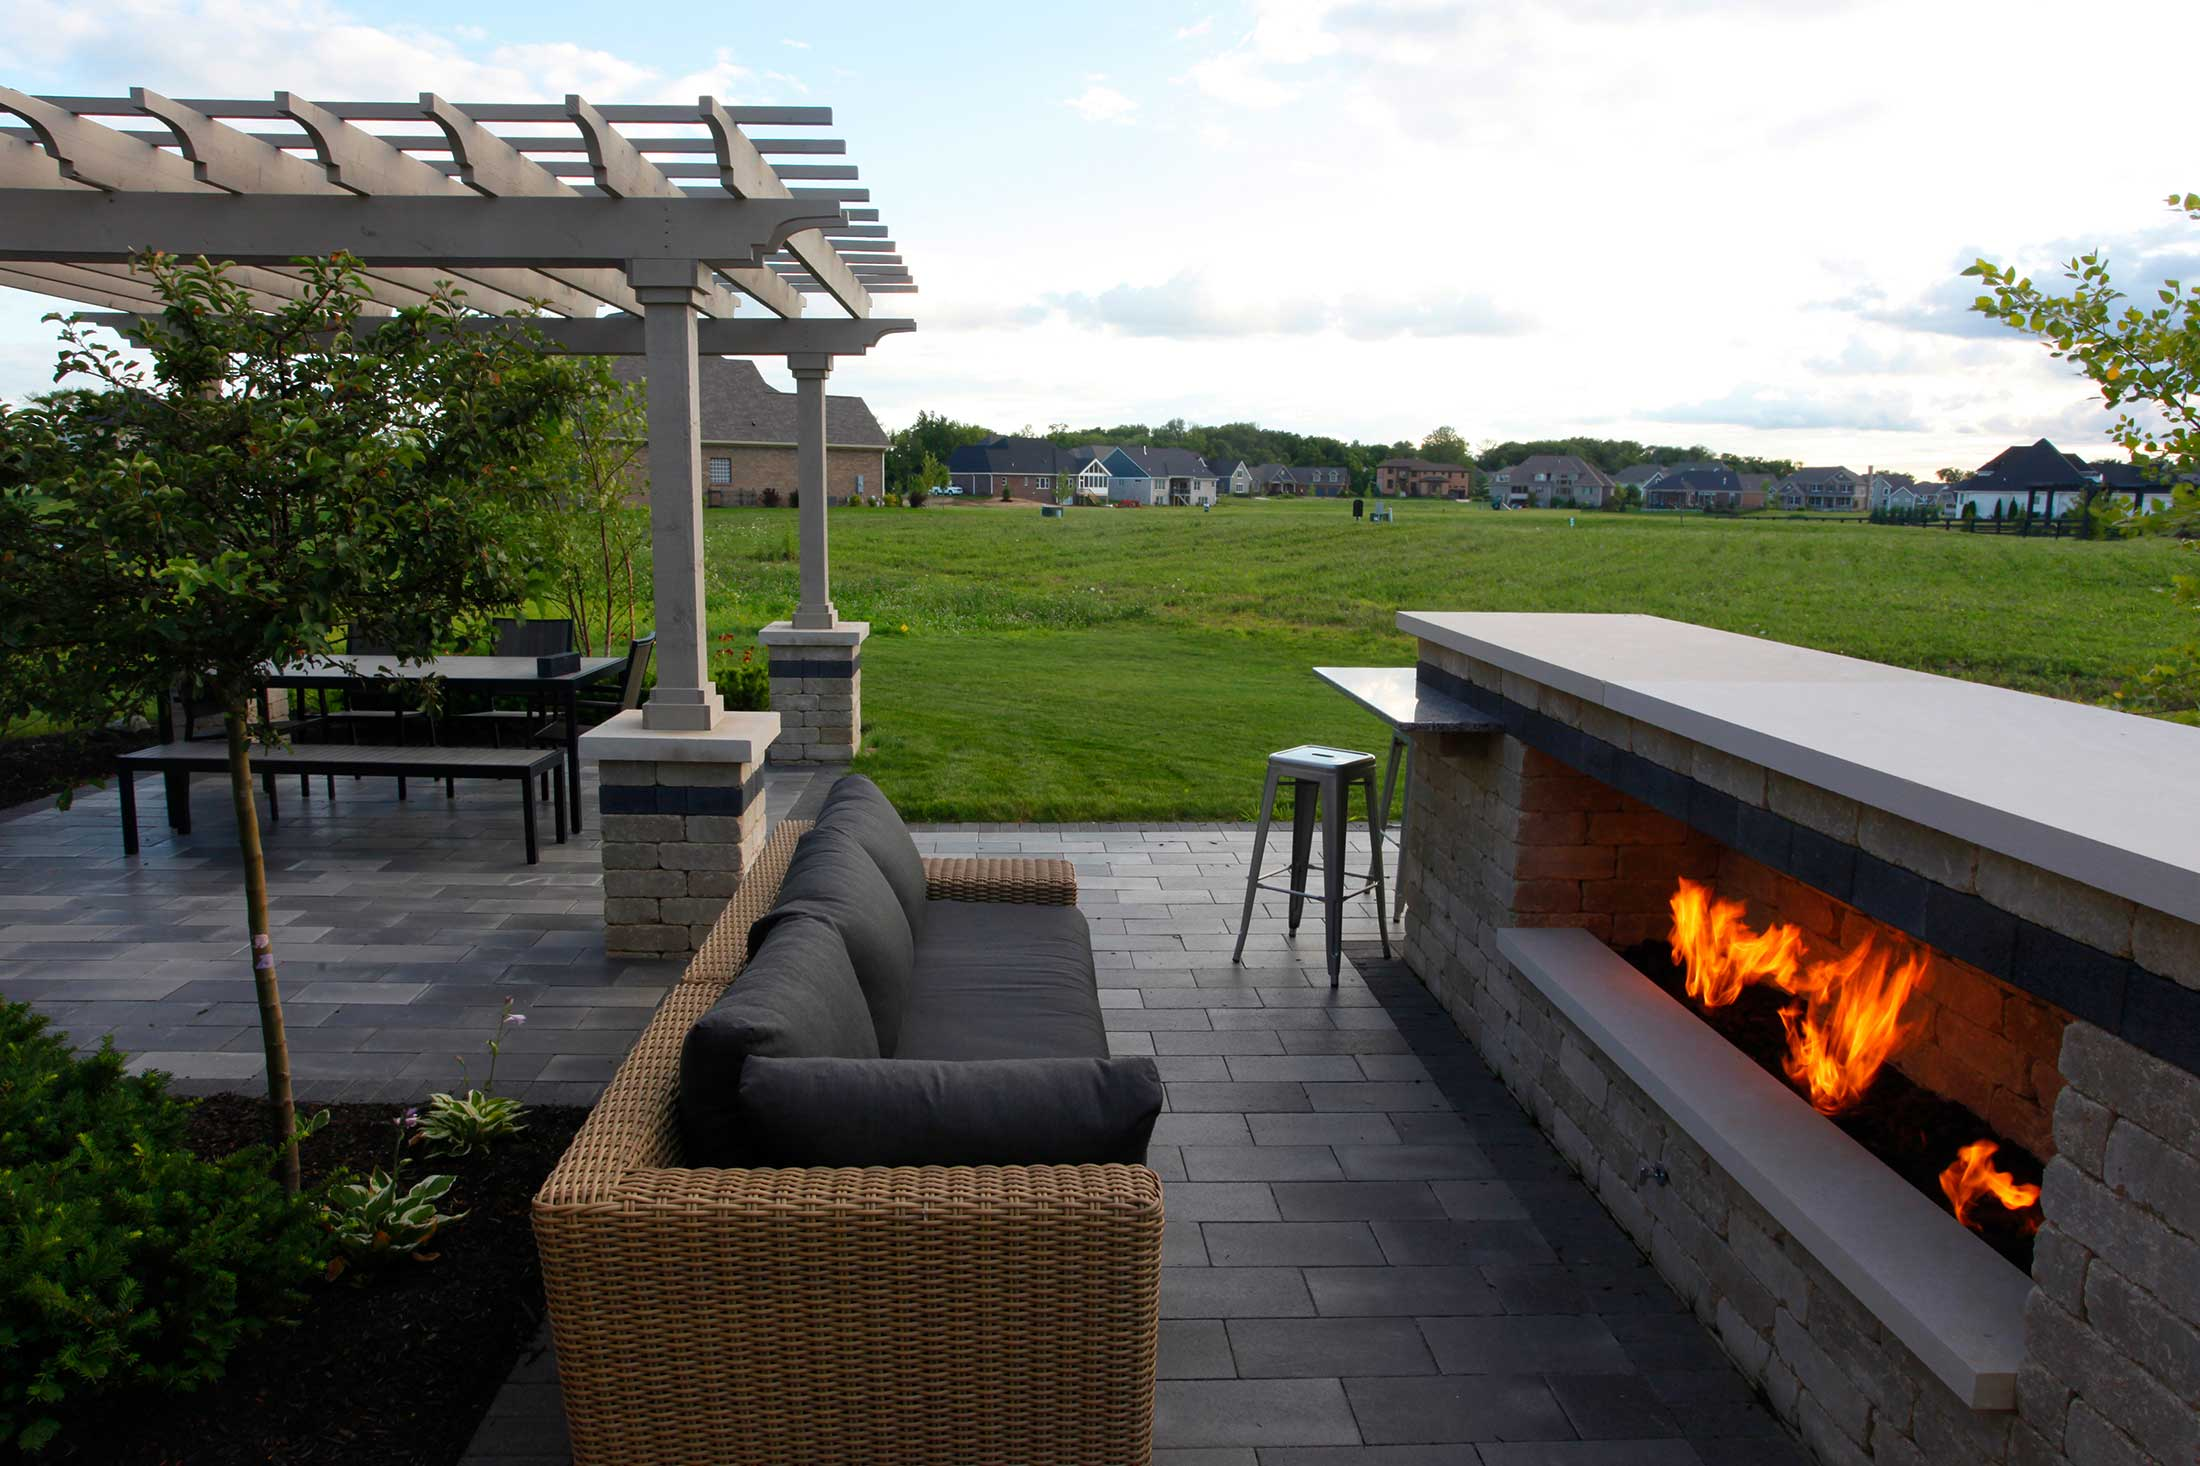 18 Apr Custom Outdoor Fire Features